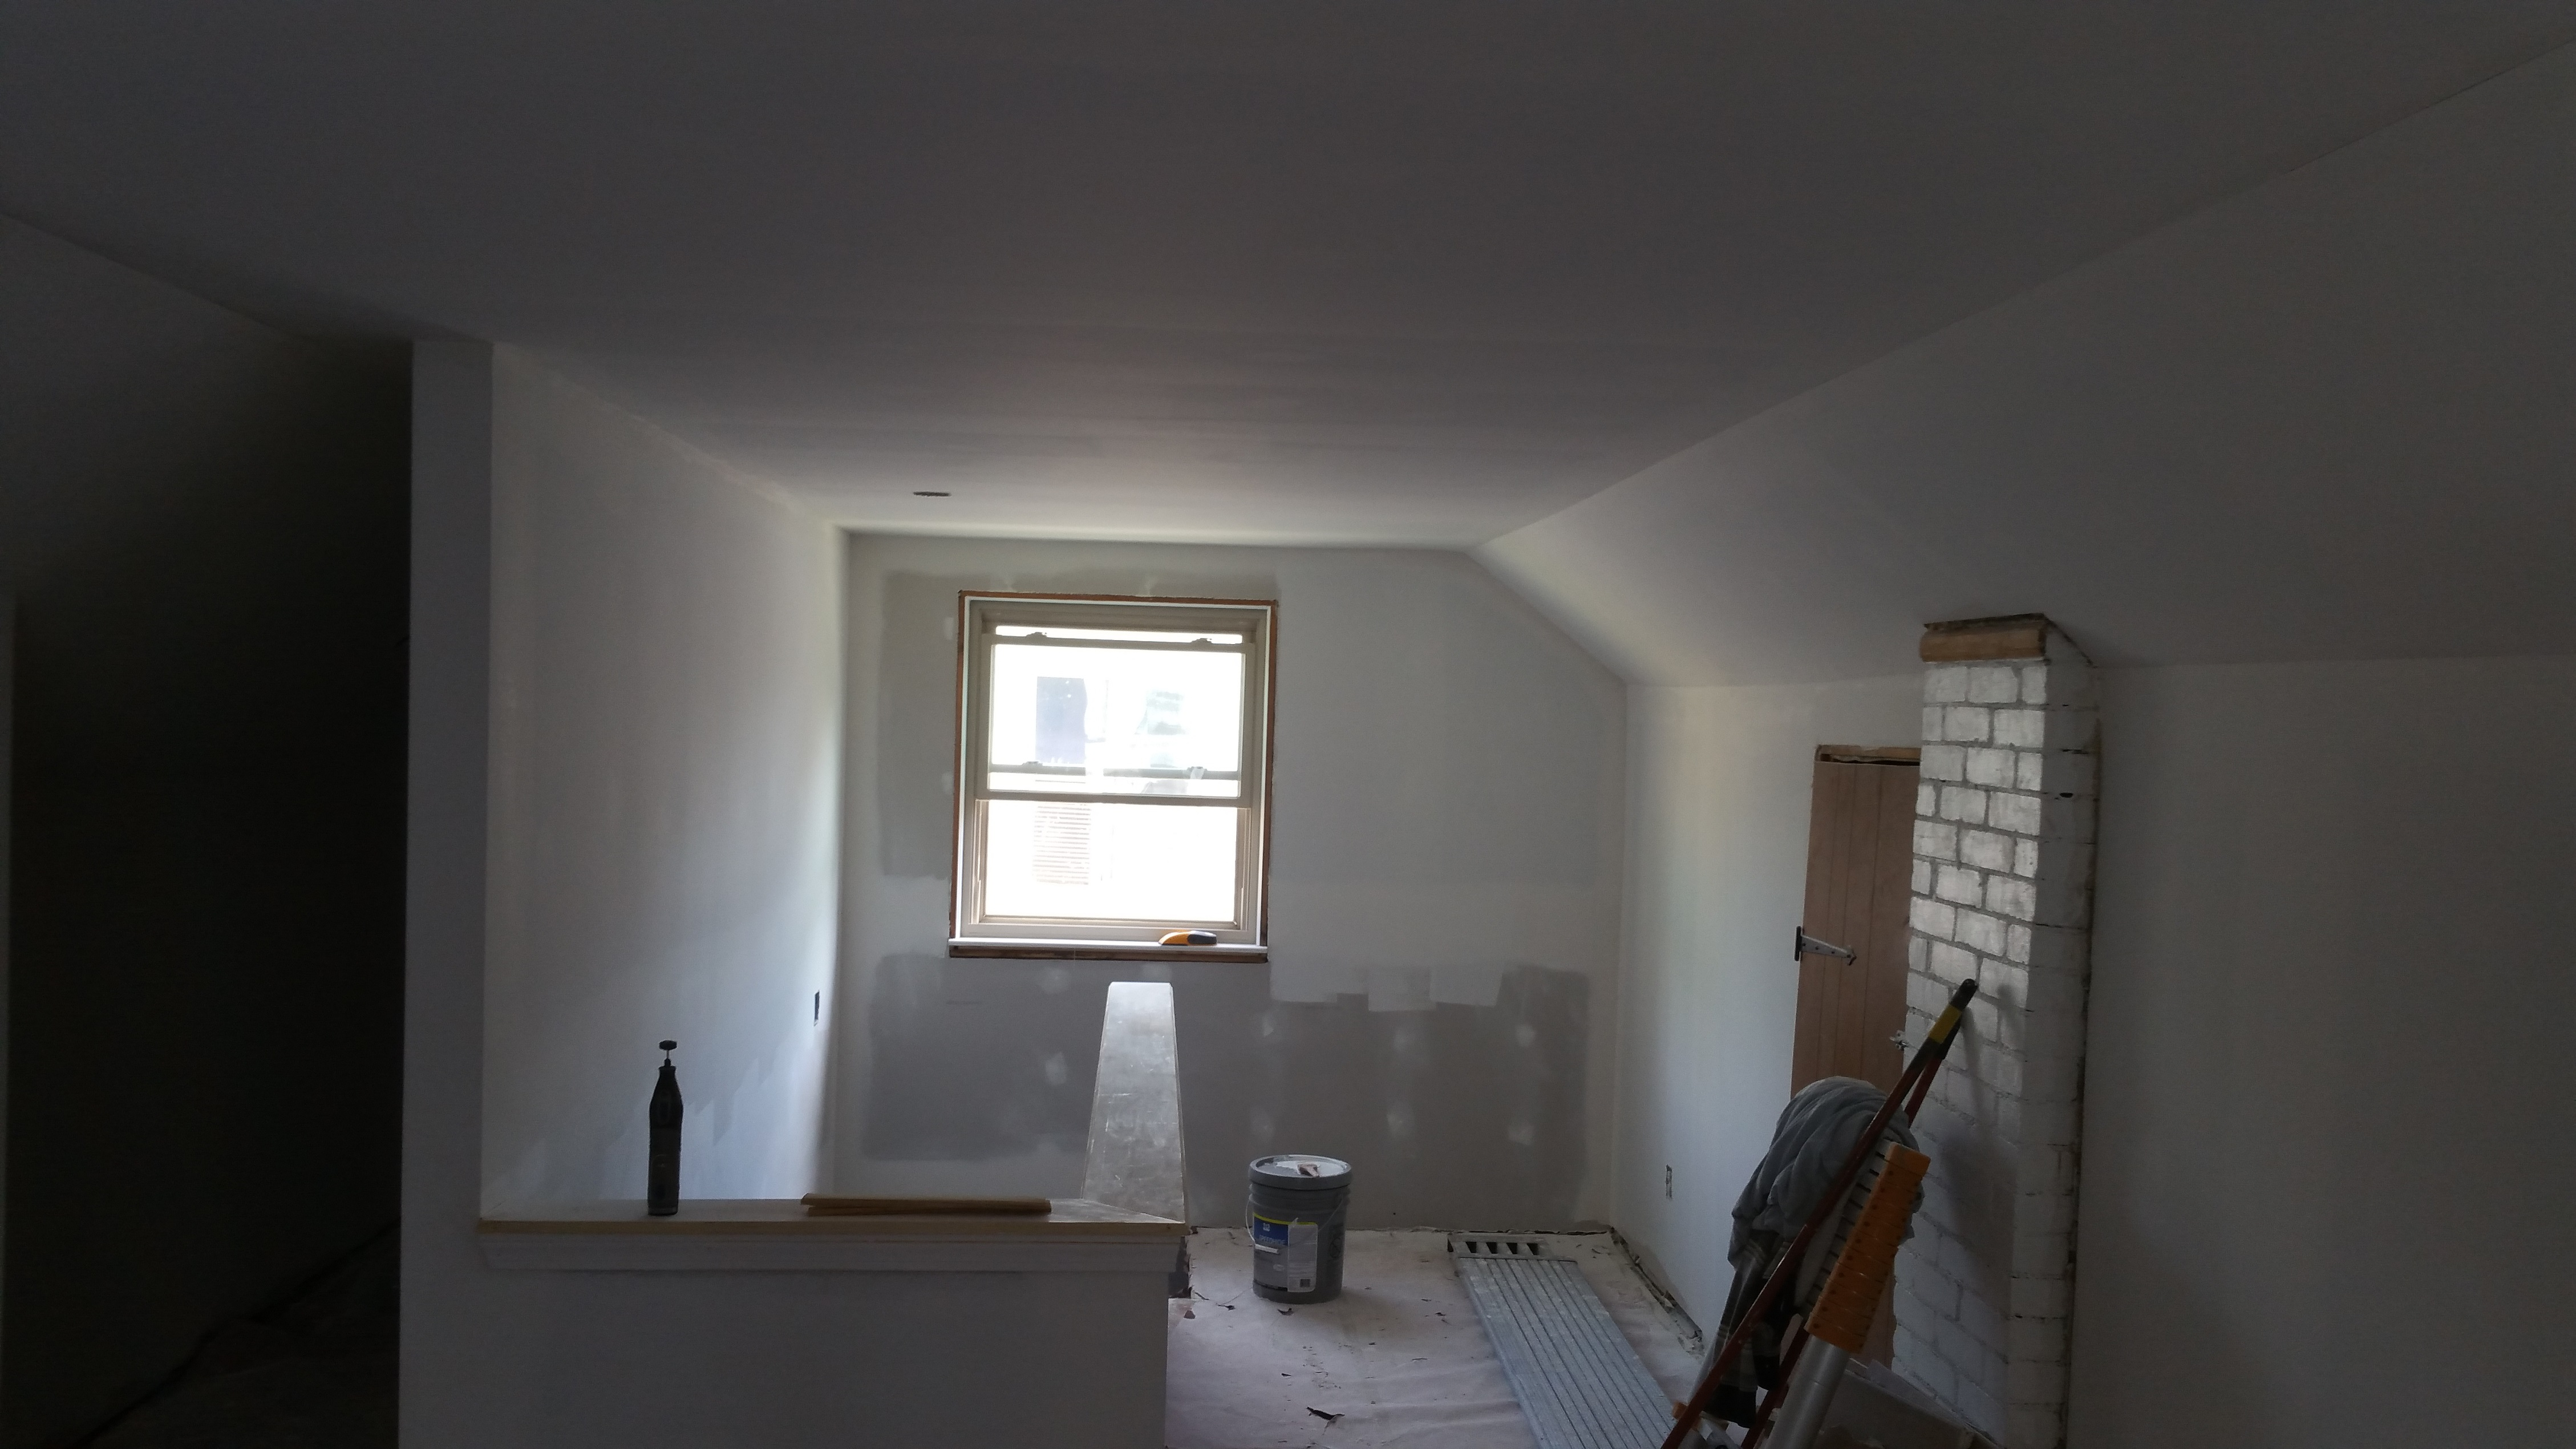 Upstairs Ceiling 4